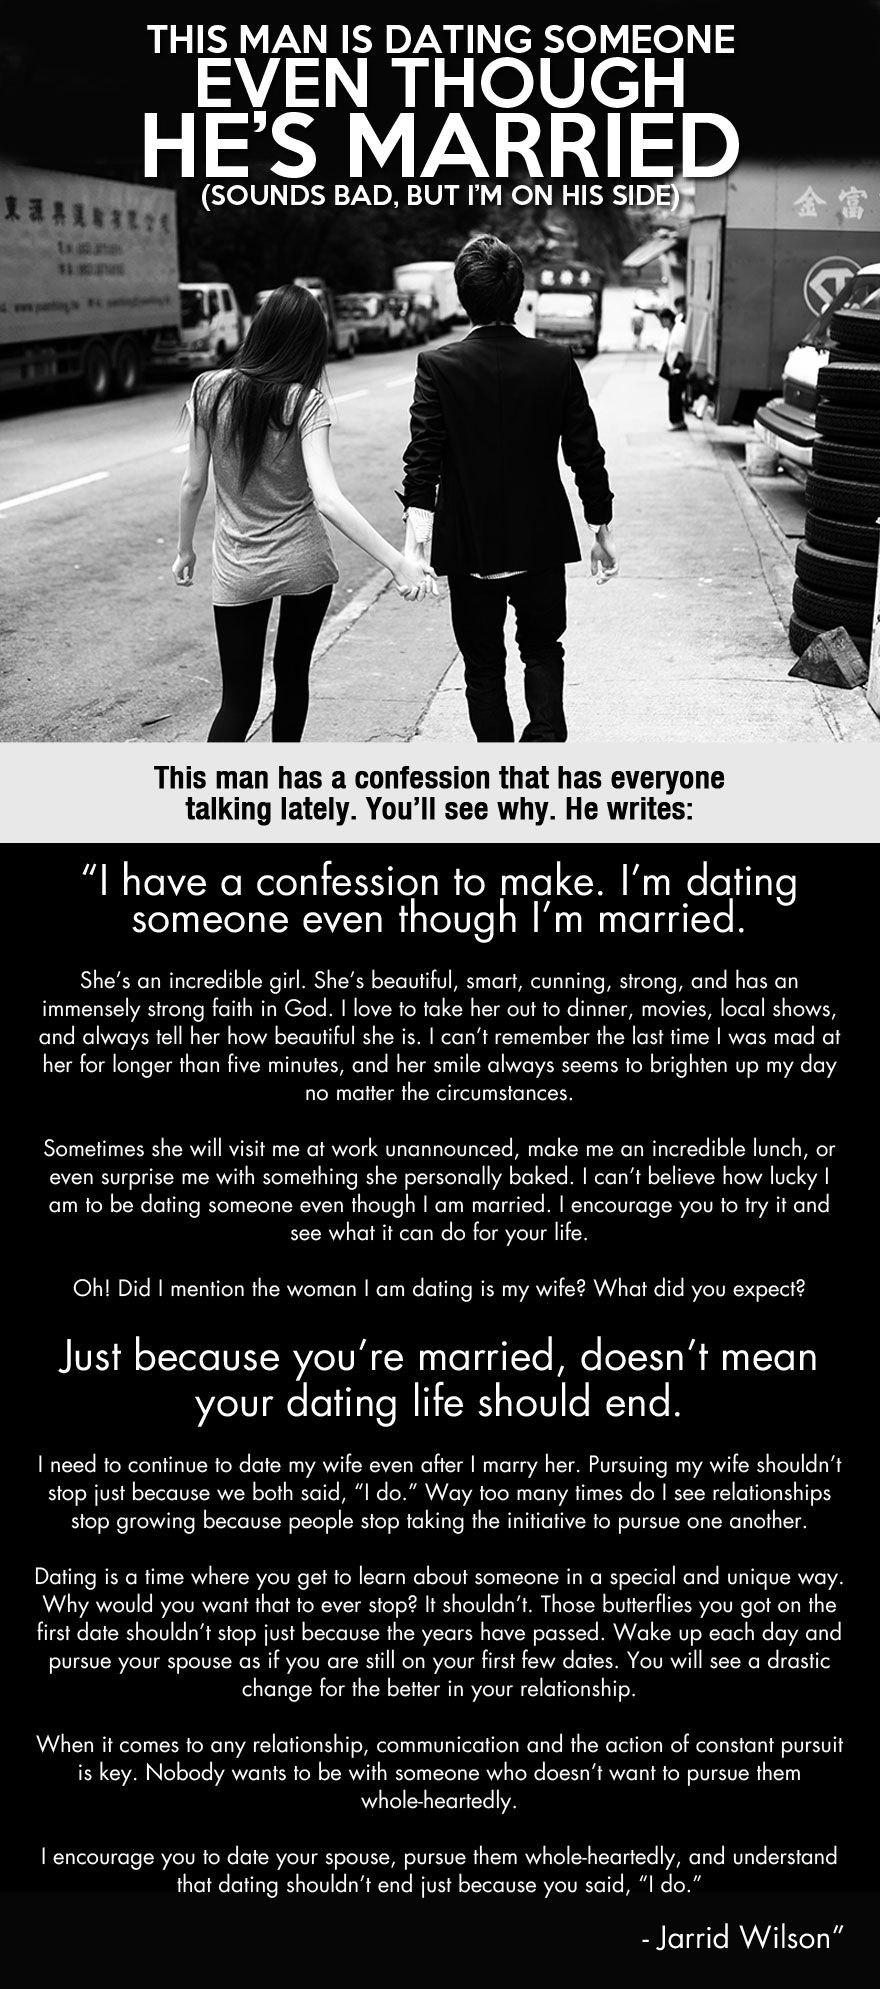 Married Woman In Love With Another Man Quotes : married, woman, another, quotes, Dating, Someone, Though, Married…, Marriage,, Quotes,, Married